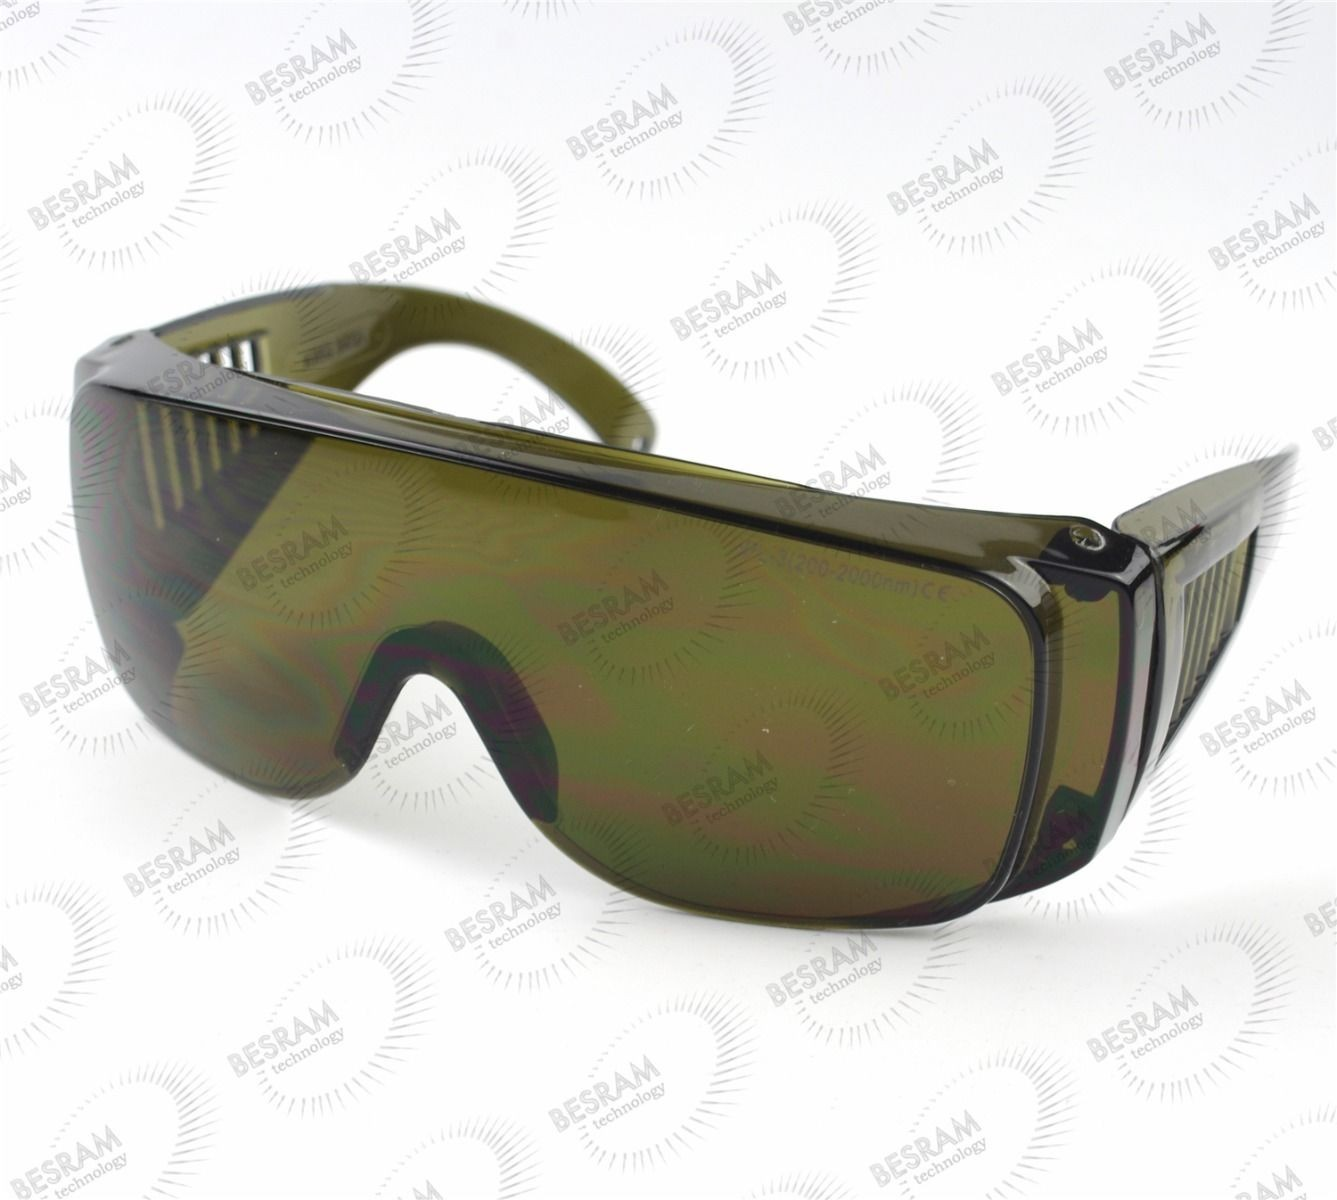 PB-IPL 190nm-2000nm OD4+  IPL Beauty  Lighting Protective Safety Glasses Goggles CE